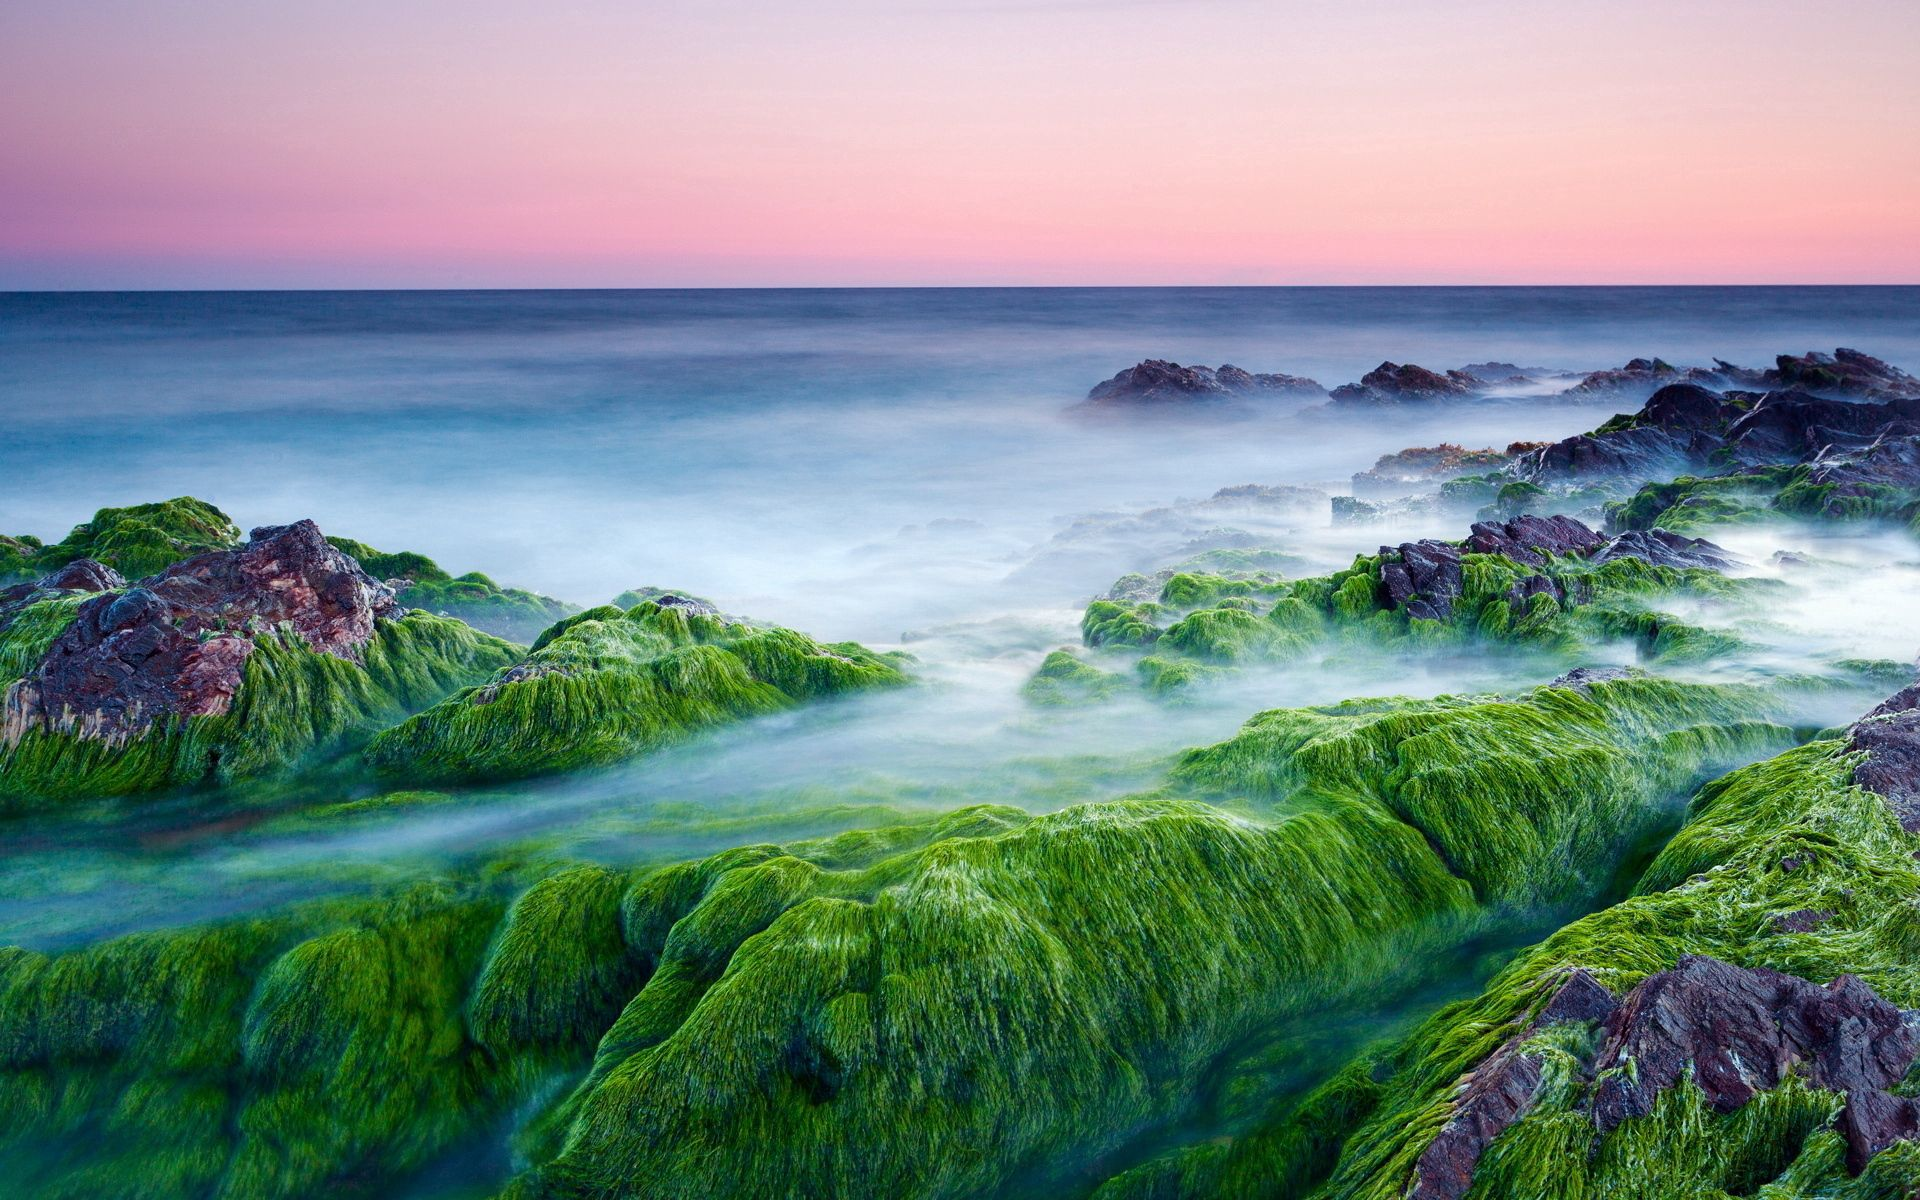 89101 download wallpaper Nature, Moss, Stones, Growths, Sea, Haze, Steam, Evaporation, Cool, Coolness screensavers and pictures for free